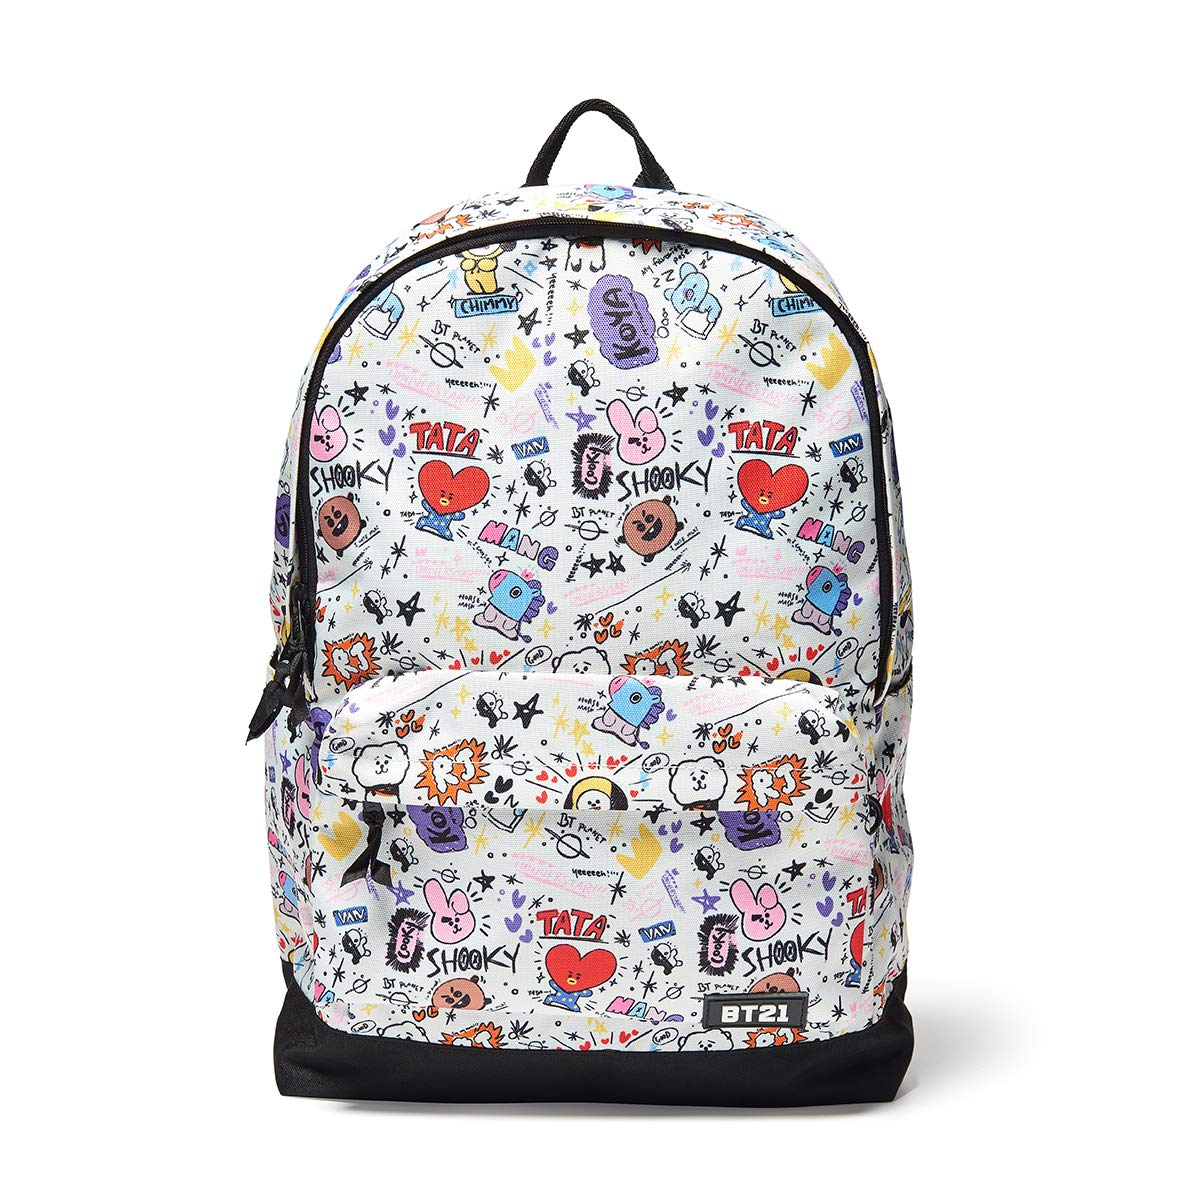 Amazon.com | BT21 Offical Merchandise by Line Friends - Graphic Backpack Travel School Book Bag, White | Backpacks